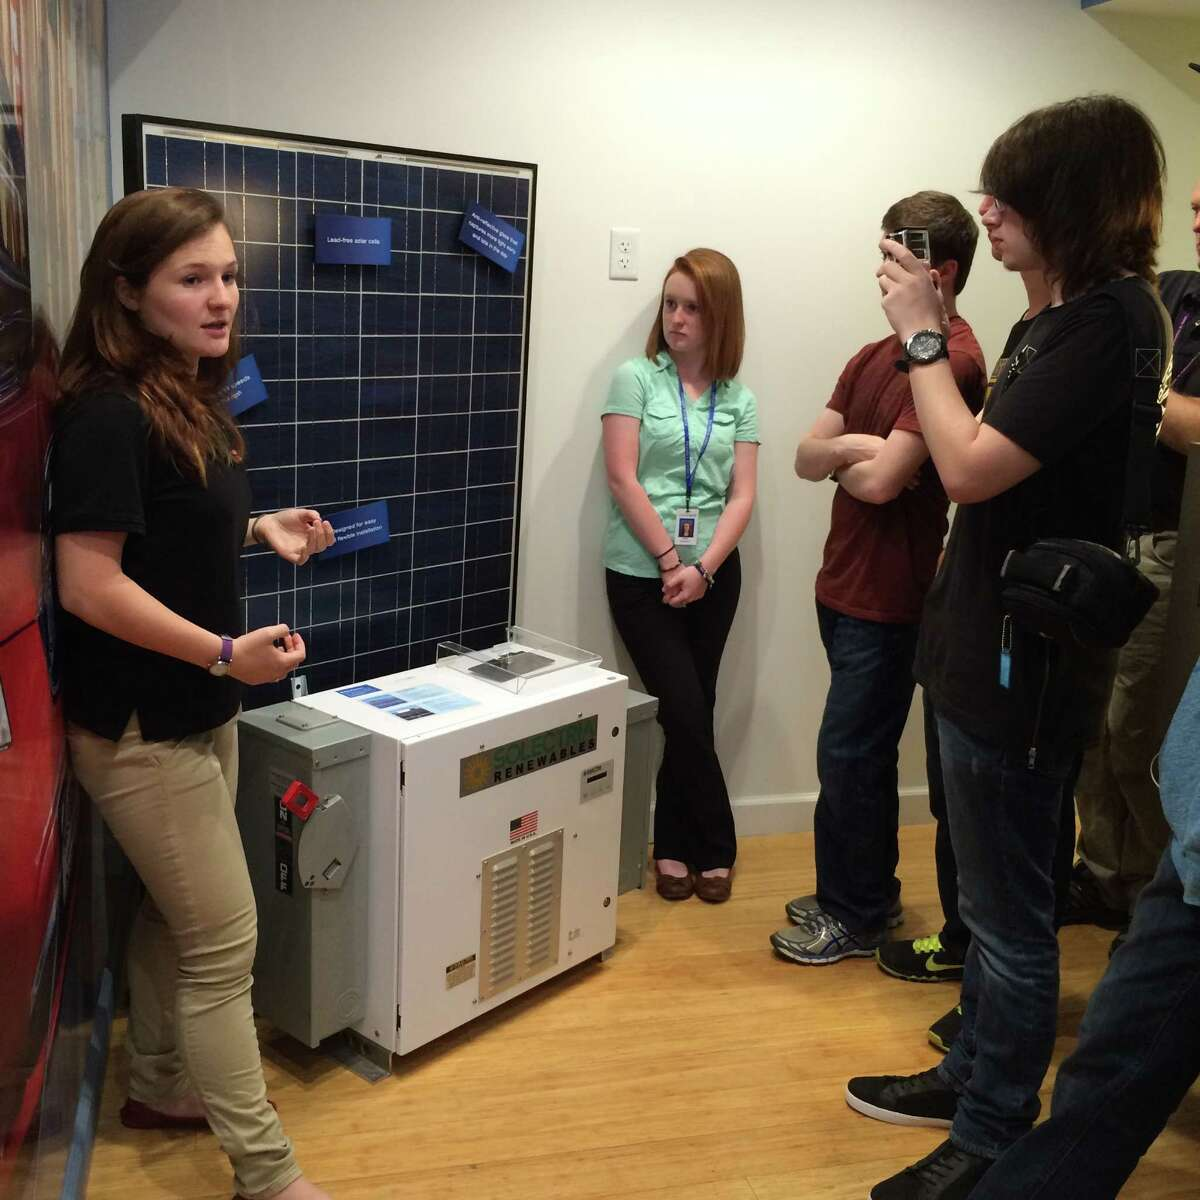 About 70 juniors from Clean Technologies & Sustainable Industries Early College High School in Malta took a trip last week to National Grid?s Sustainability Hub in Worcester, Mass. Photo coutesy National Grid